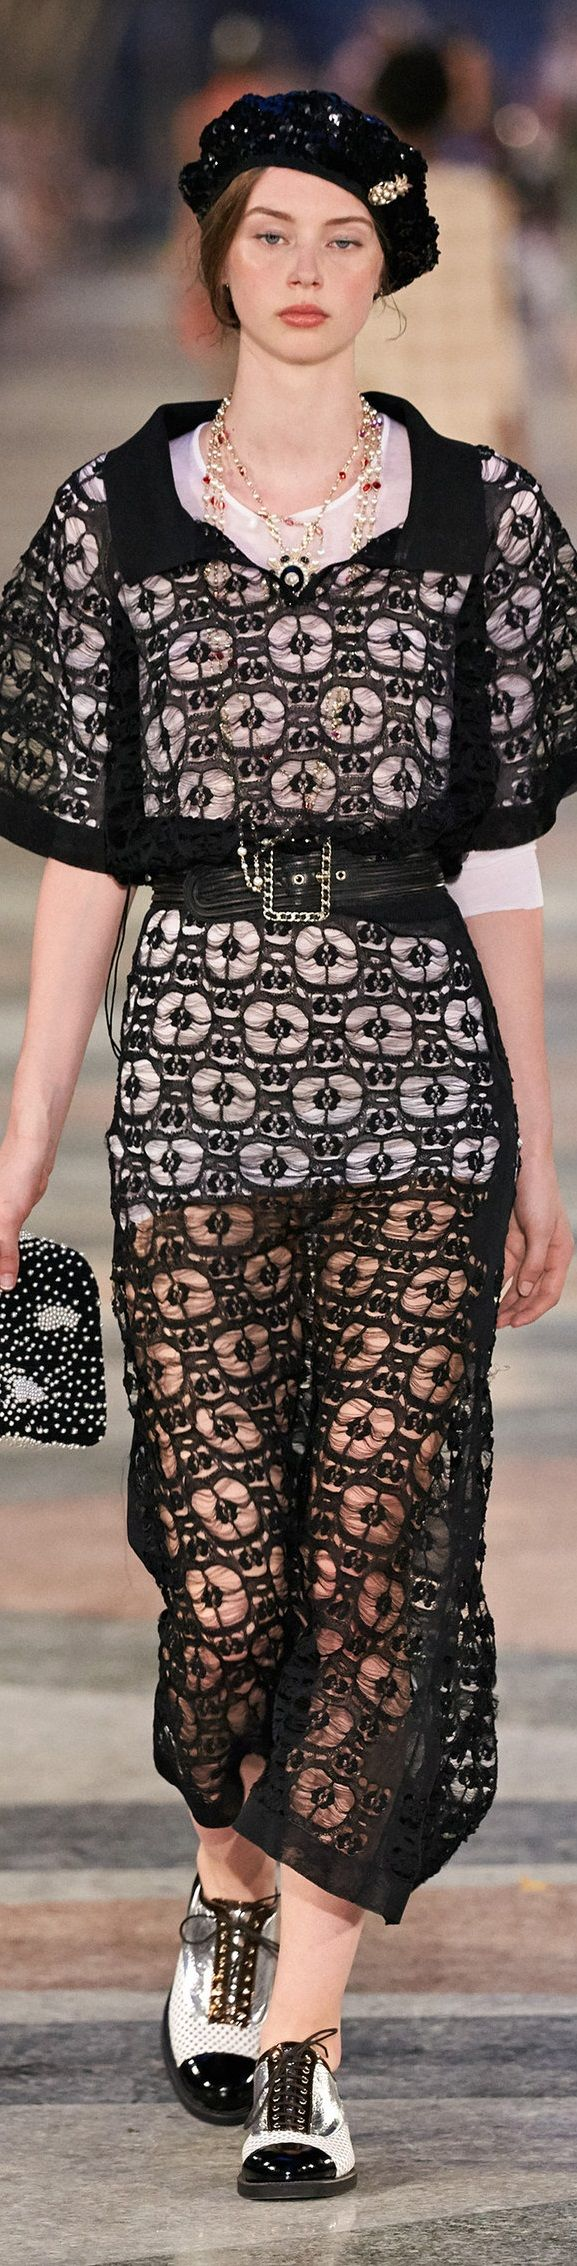 Chanel clipart top model 2017 images Cruise about Chanel